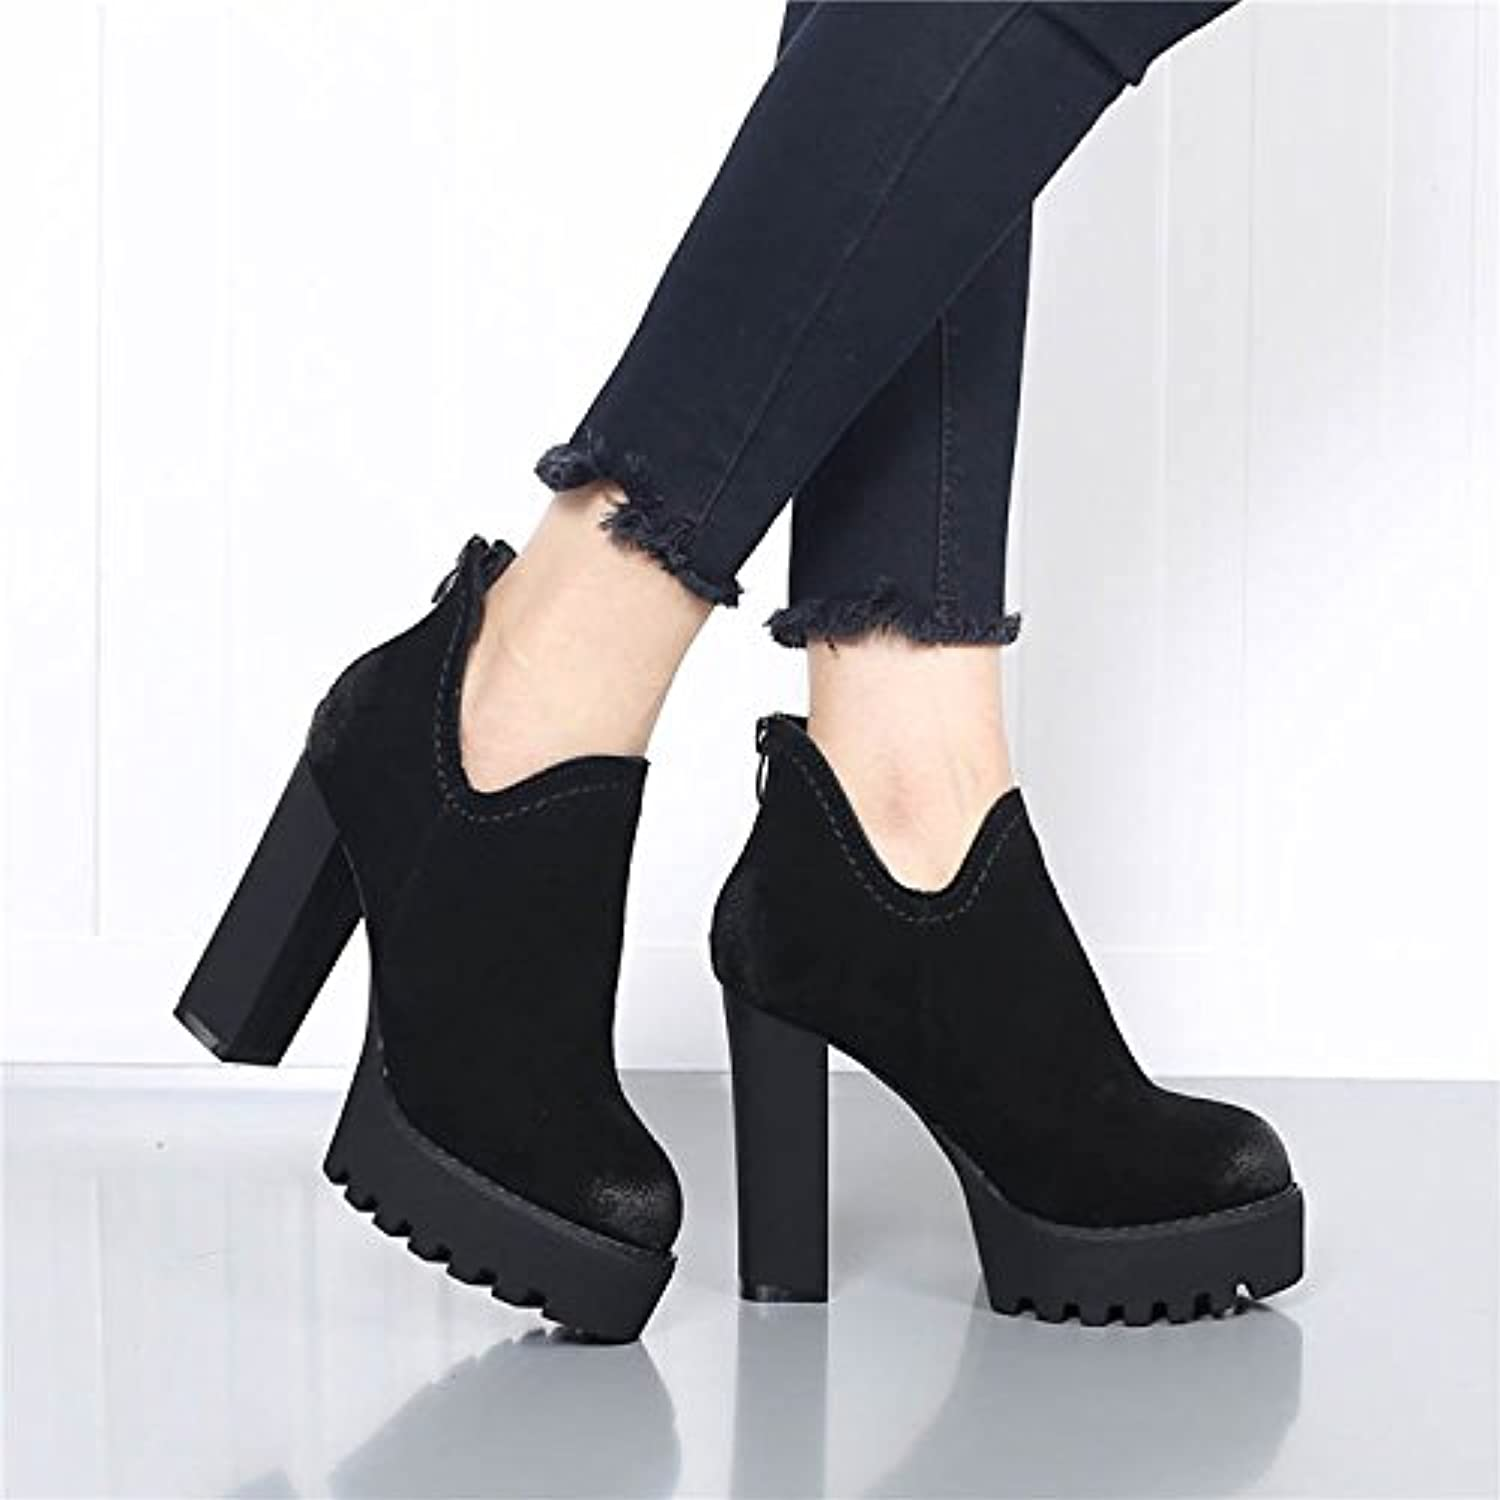 3ce9372ddb0c6 GTVERNH-Matte Leather Winter Women'S shoes Anti-Plush Leather ...